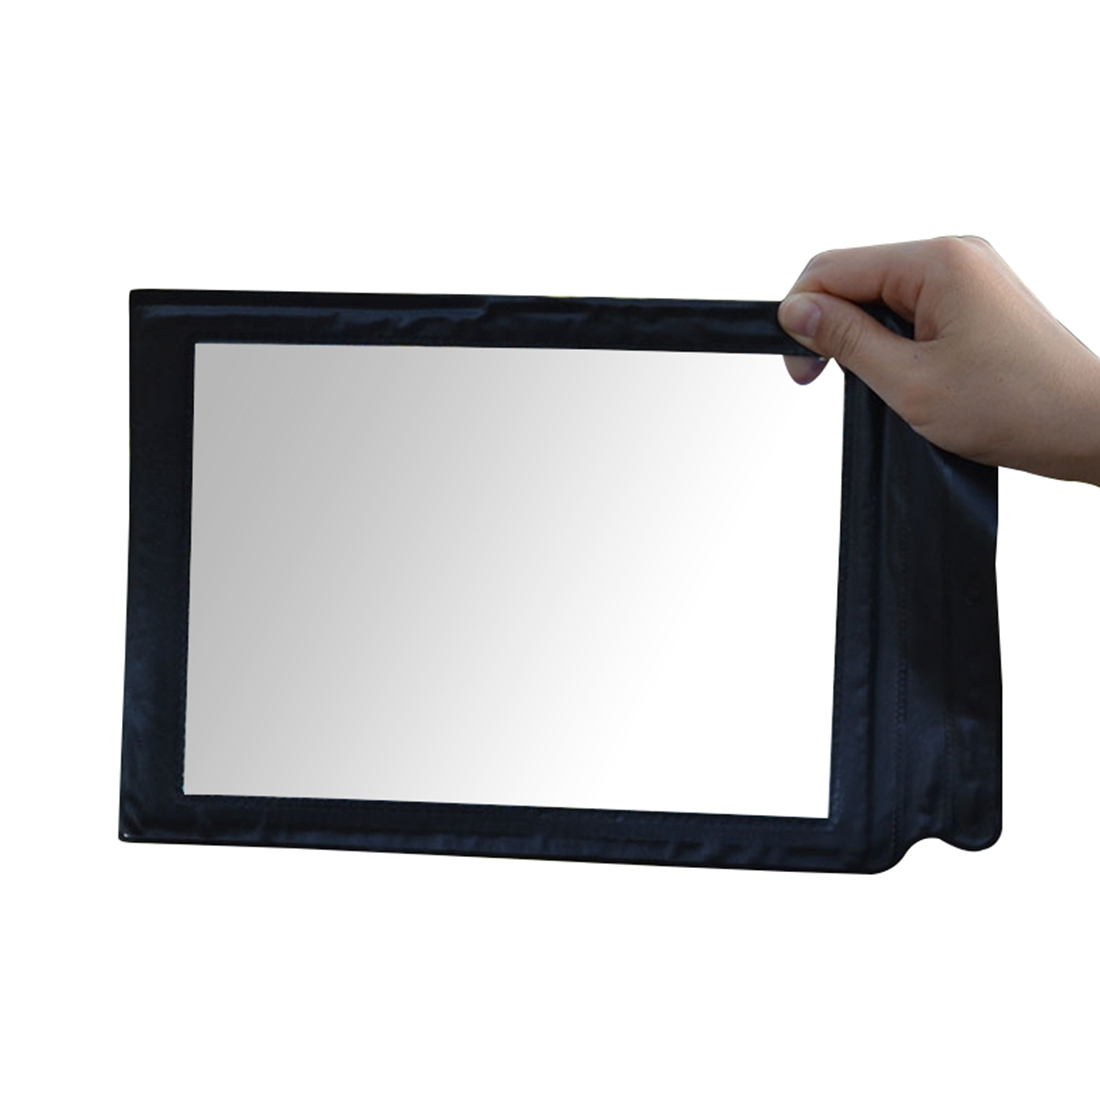 NFLC-A4 Full Page 3x Magnifier Sheet Large Magnifying Glass Book Reading Aid Lens 3x a4 full page large giant hands free desk foldable magnifying glass magnifier for reading sewing knitting with 4 led lights